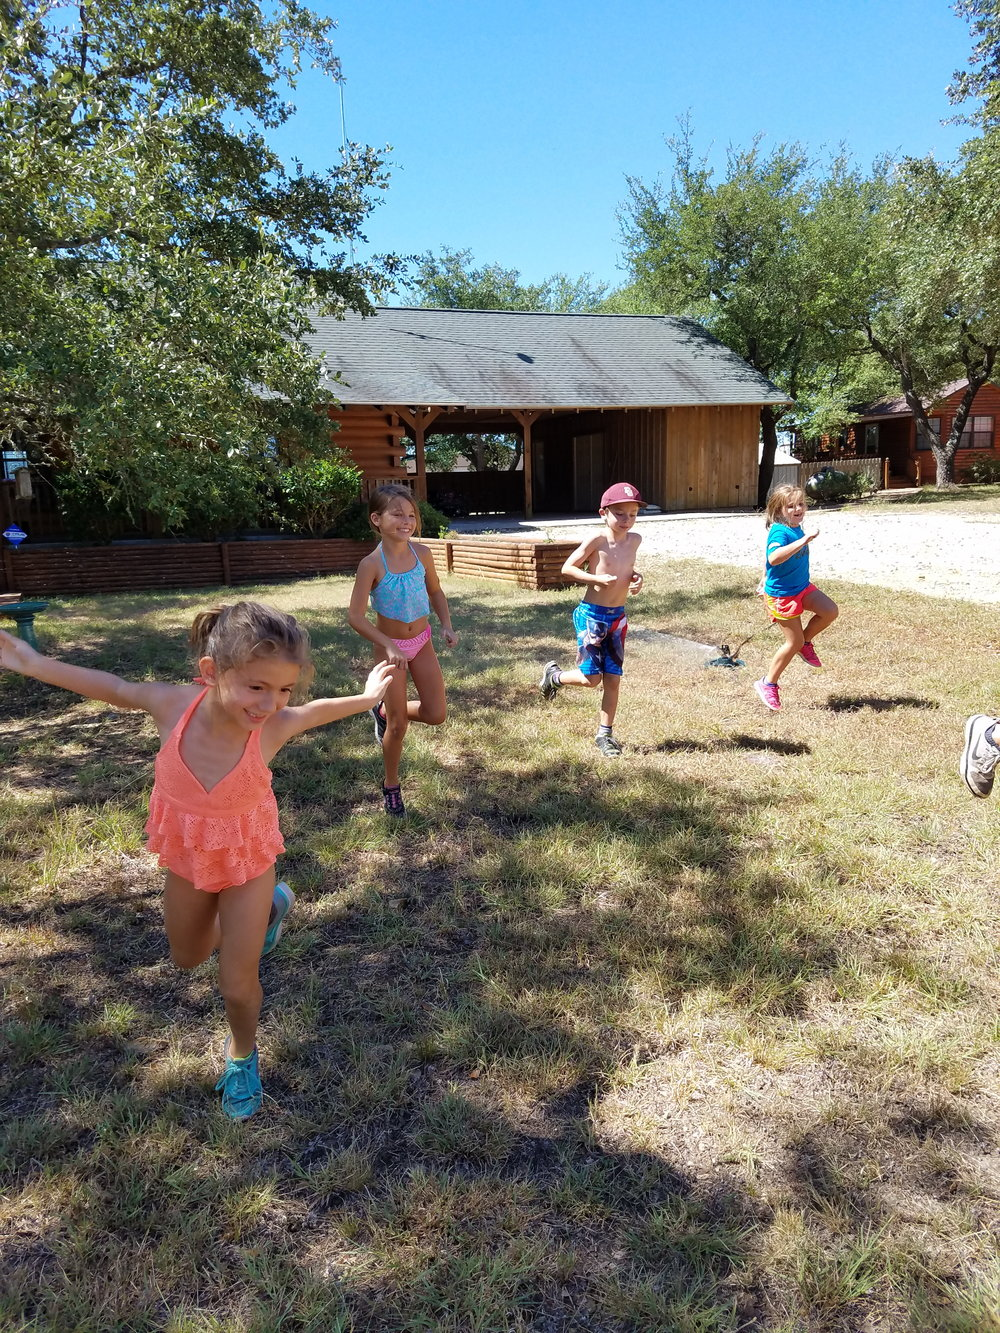 Sprinkler games helped cool everyone off!